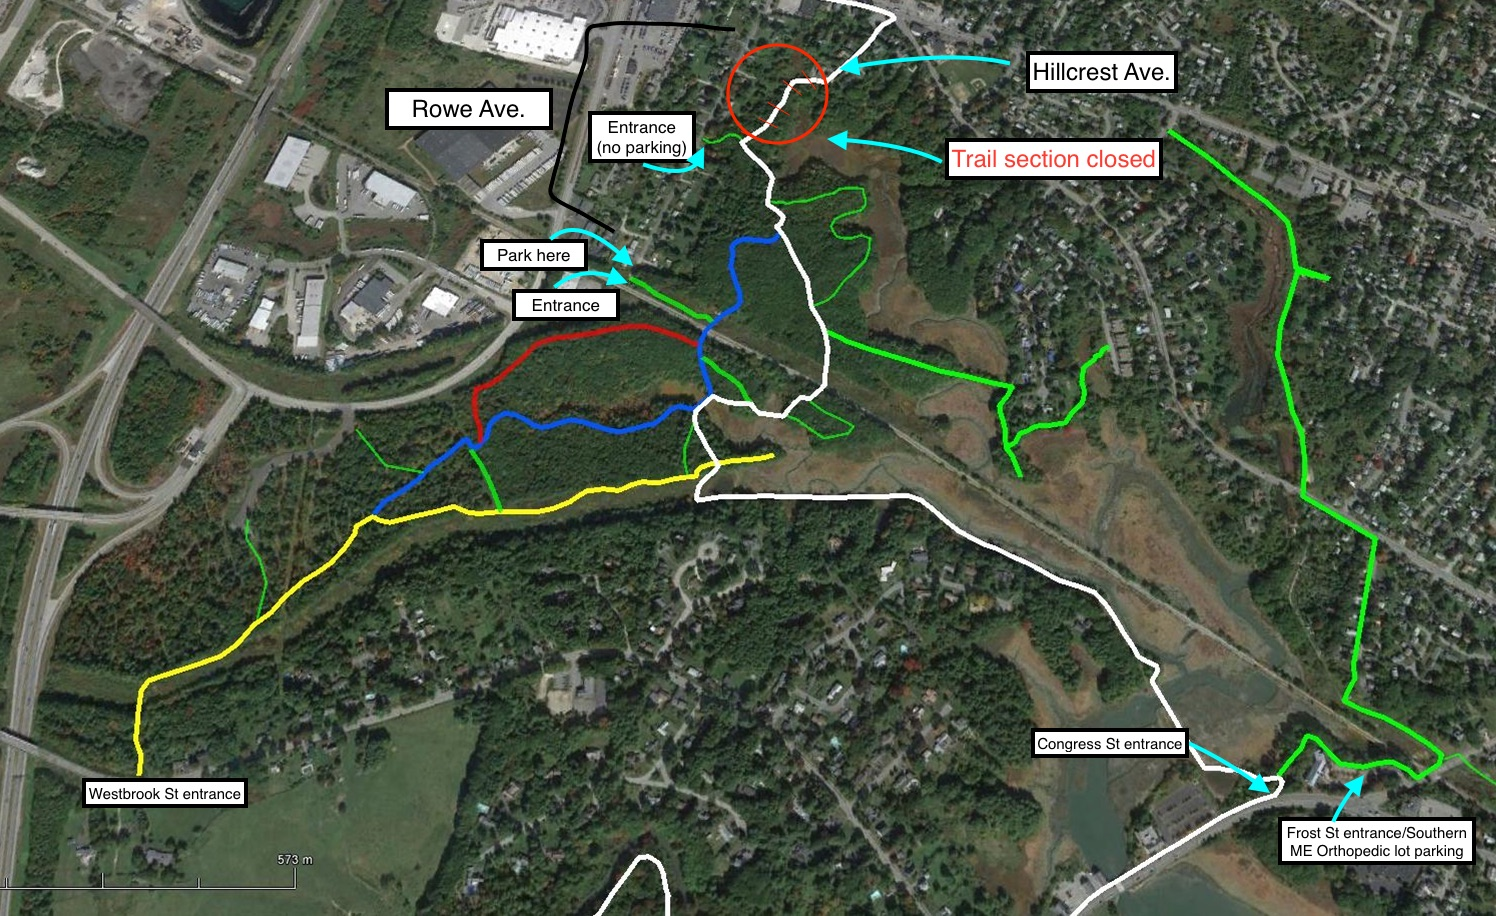 Sewer work closes Portland Trail access